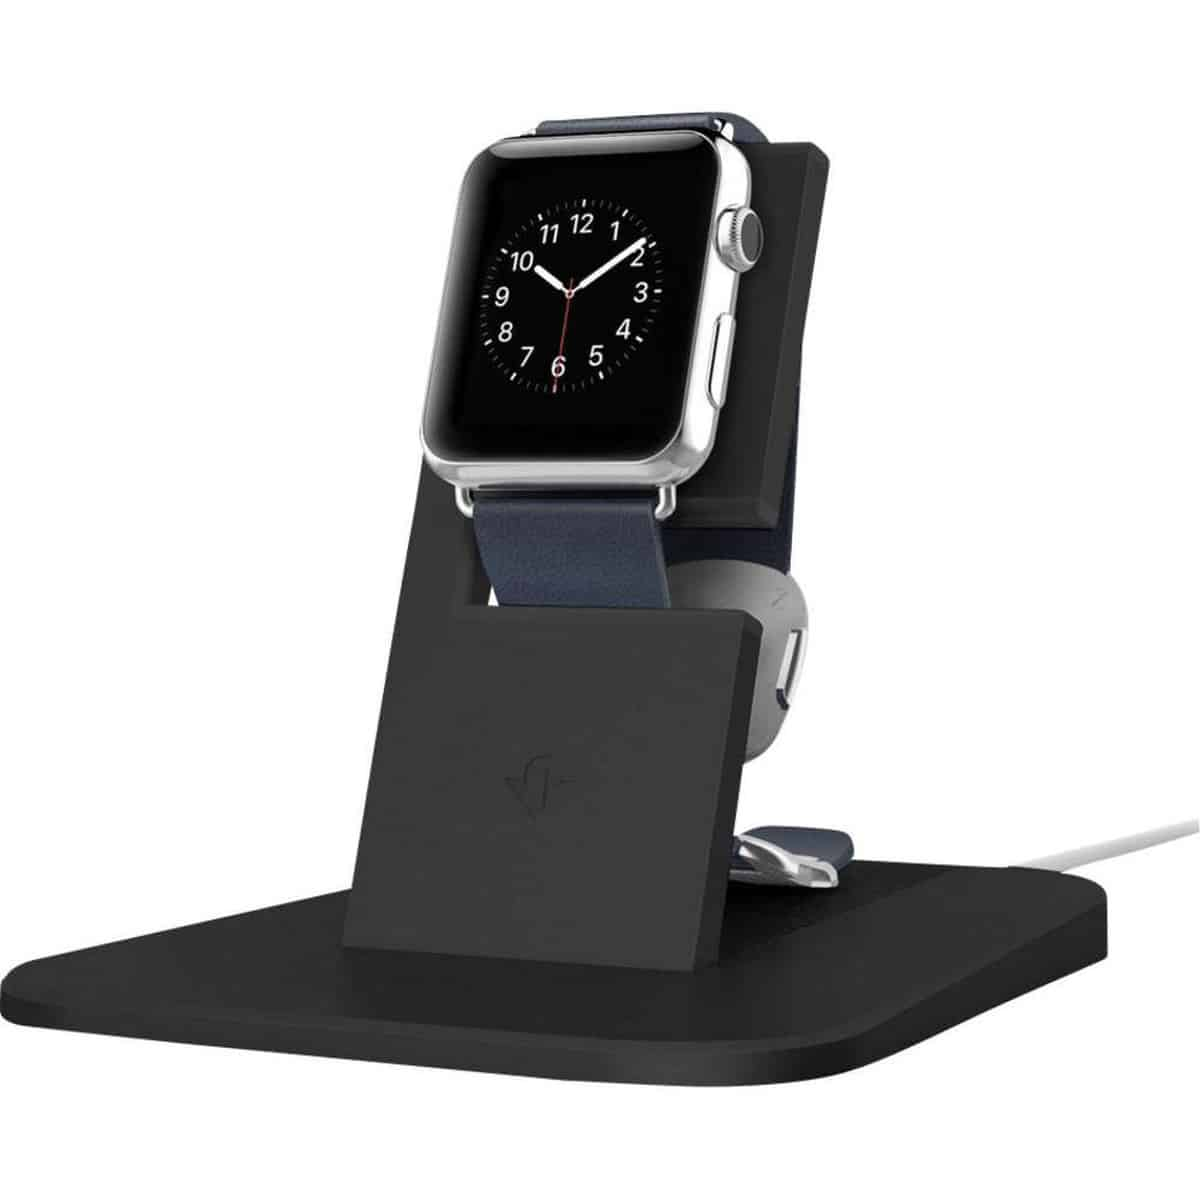 Twelve South HiRise | Apple Watch Accessories You Didn't Know You Needed